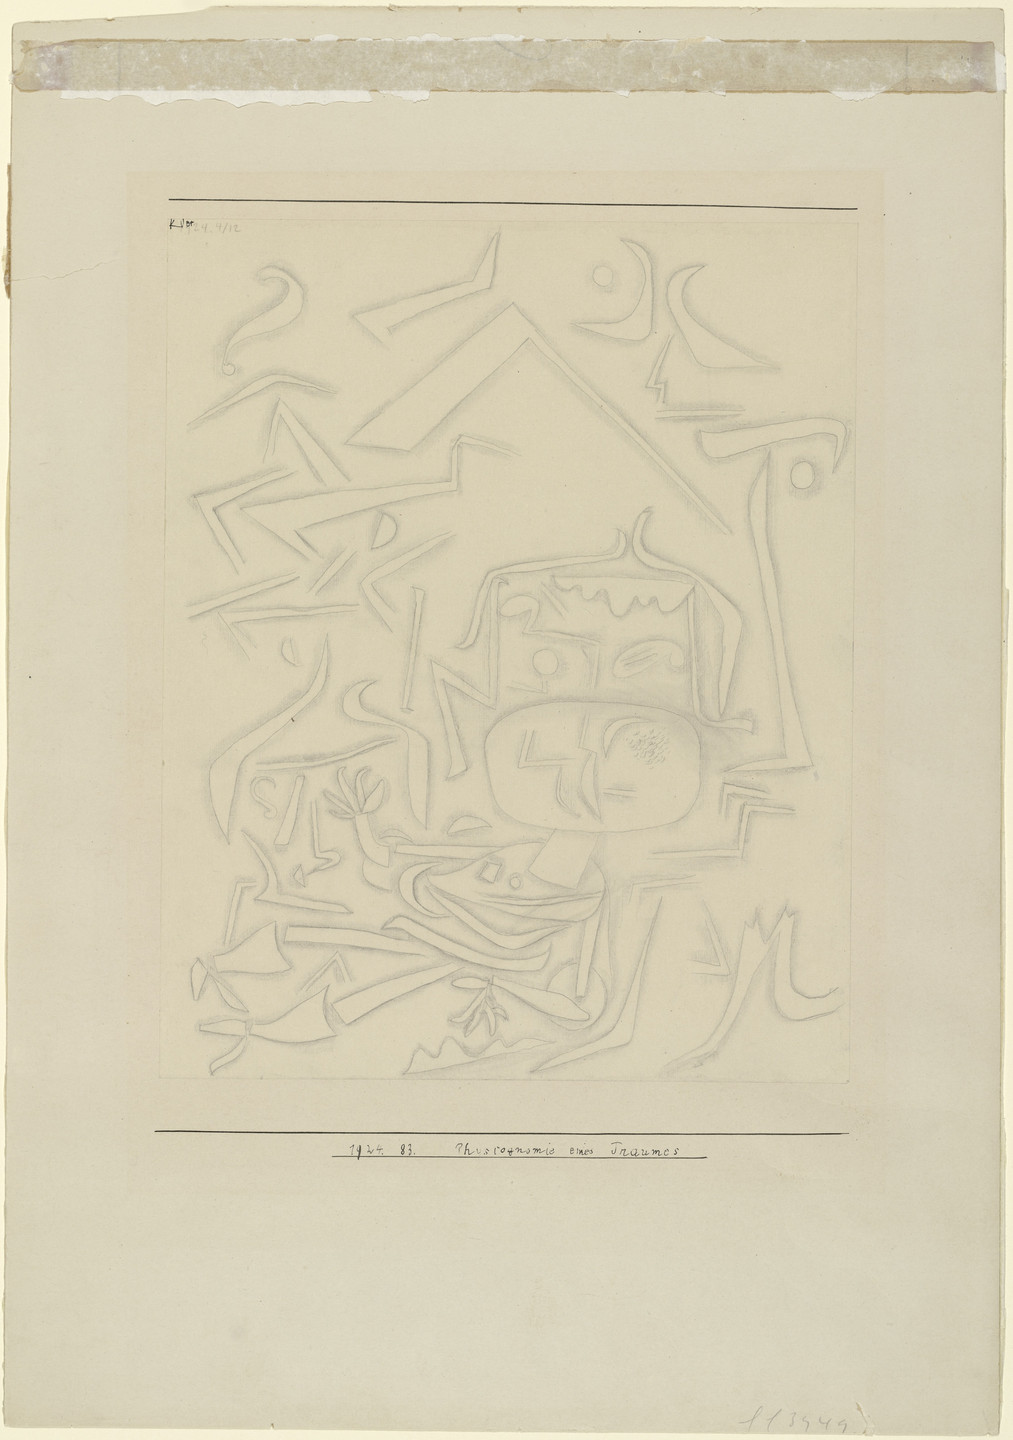 Paul Klee. Physiognomy of a Dream (Physiognomie eines Traumes). 1924